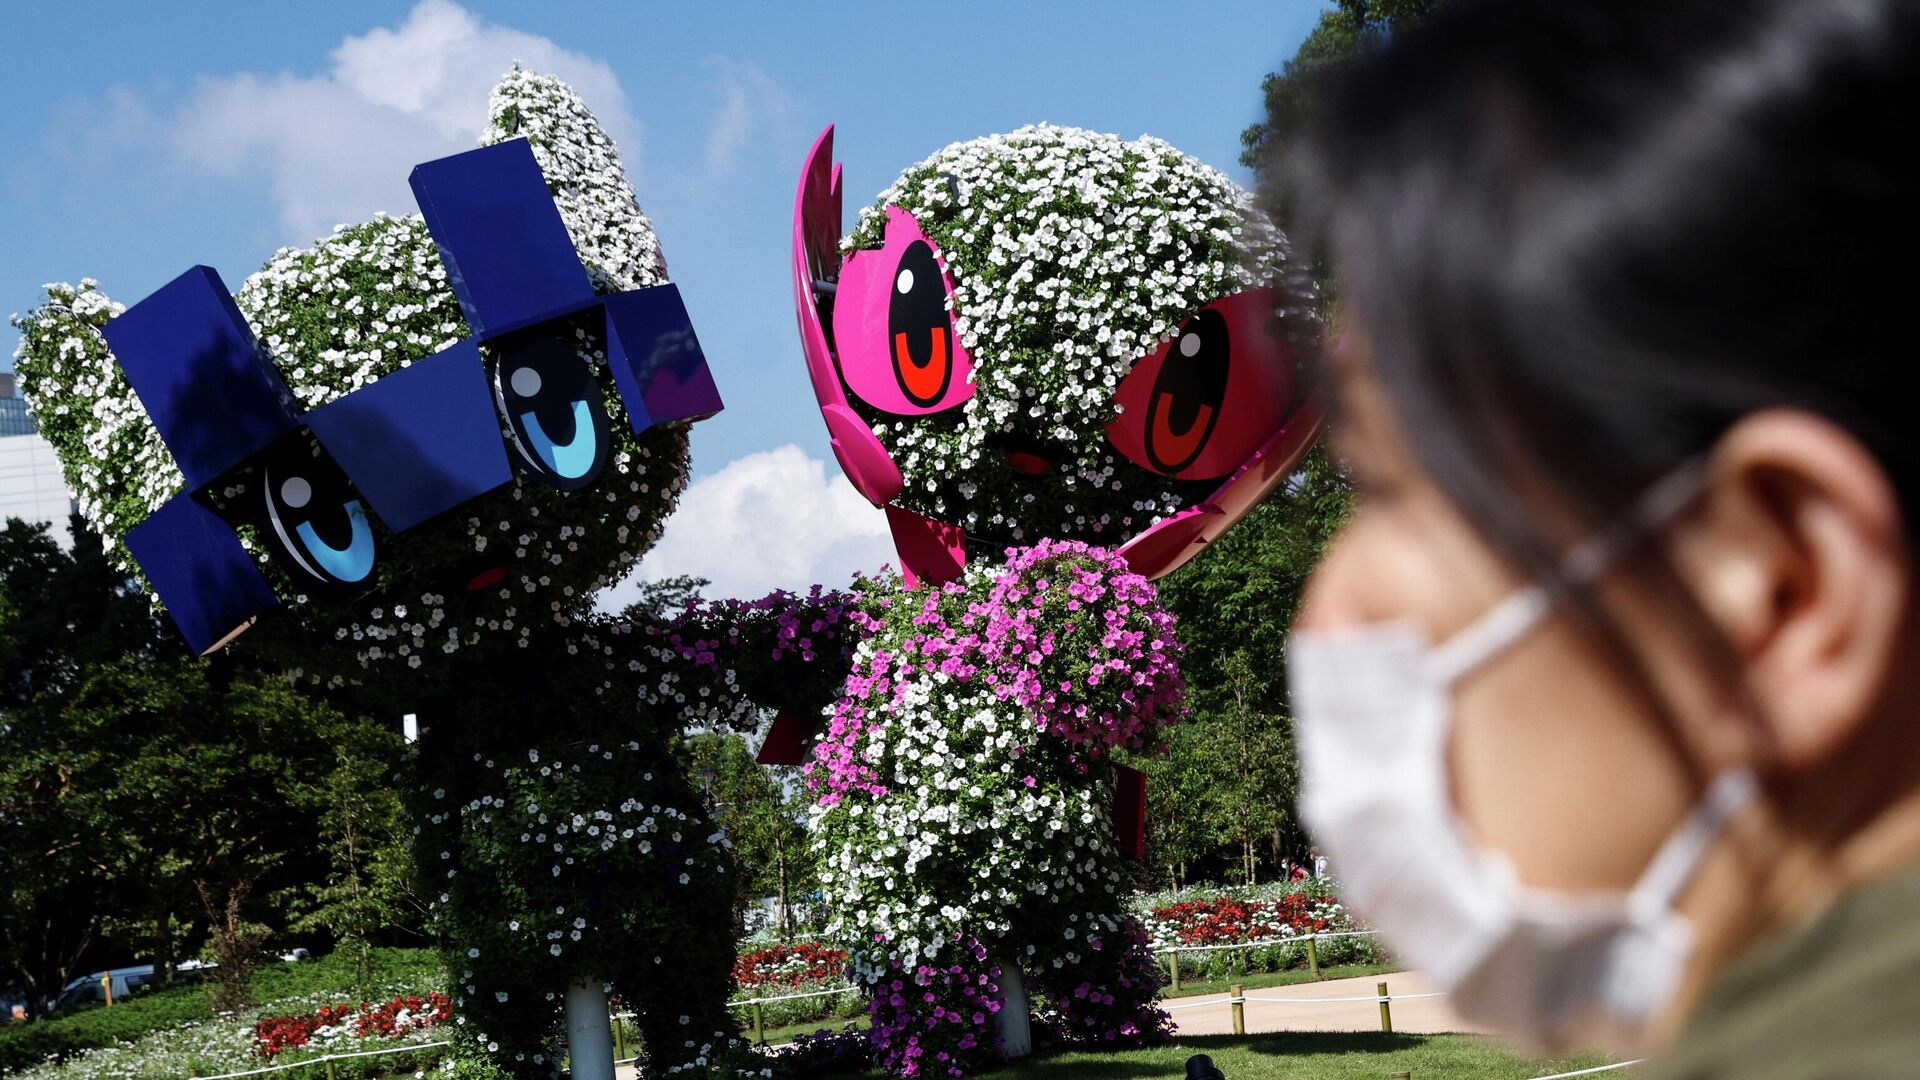 A woman stands in front of the Tokyo 2020 Olympic and Paralympic mascots Miraitowa and Someity as the coronavirus disease (COVID-19) pandemic continues in Tokyo, Japan, July 17, 2021.  REUTERS/Thomas Peter     TPX IMAGES OF THE DAY - РИА Новости, 1920, 17.07.2021